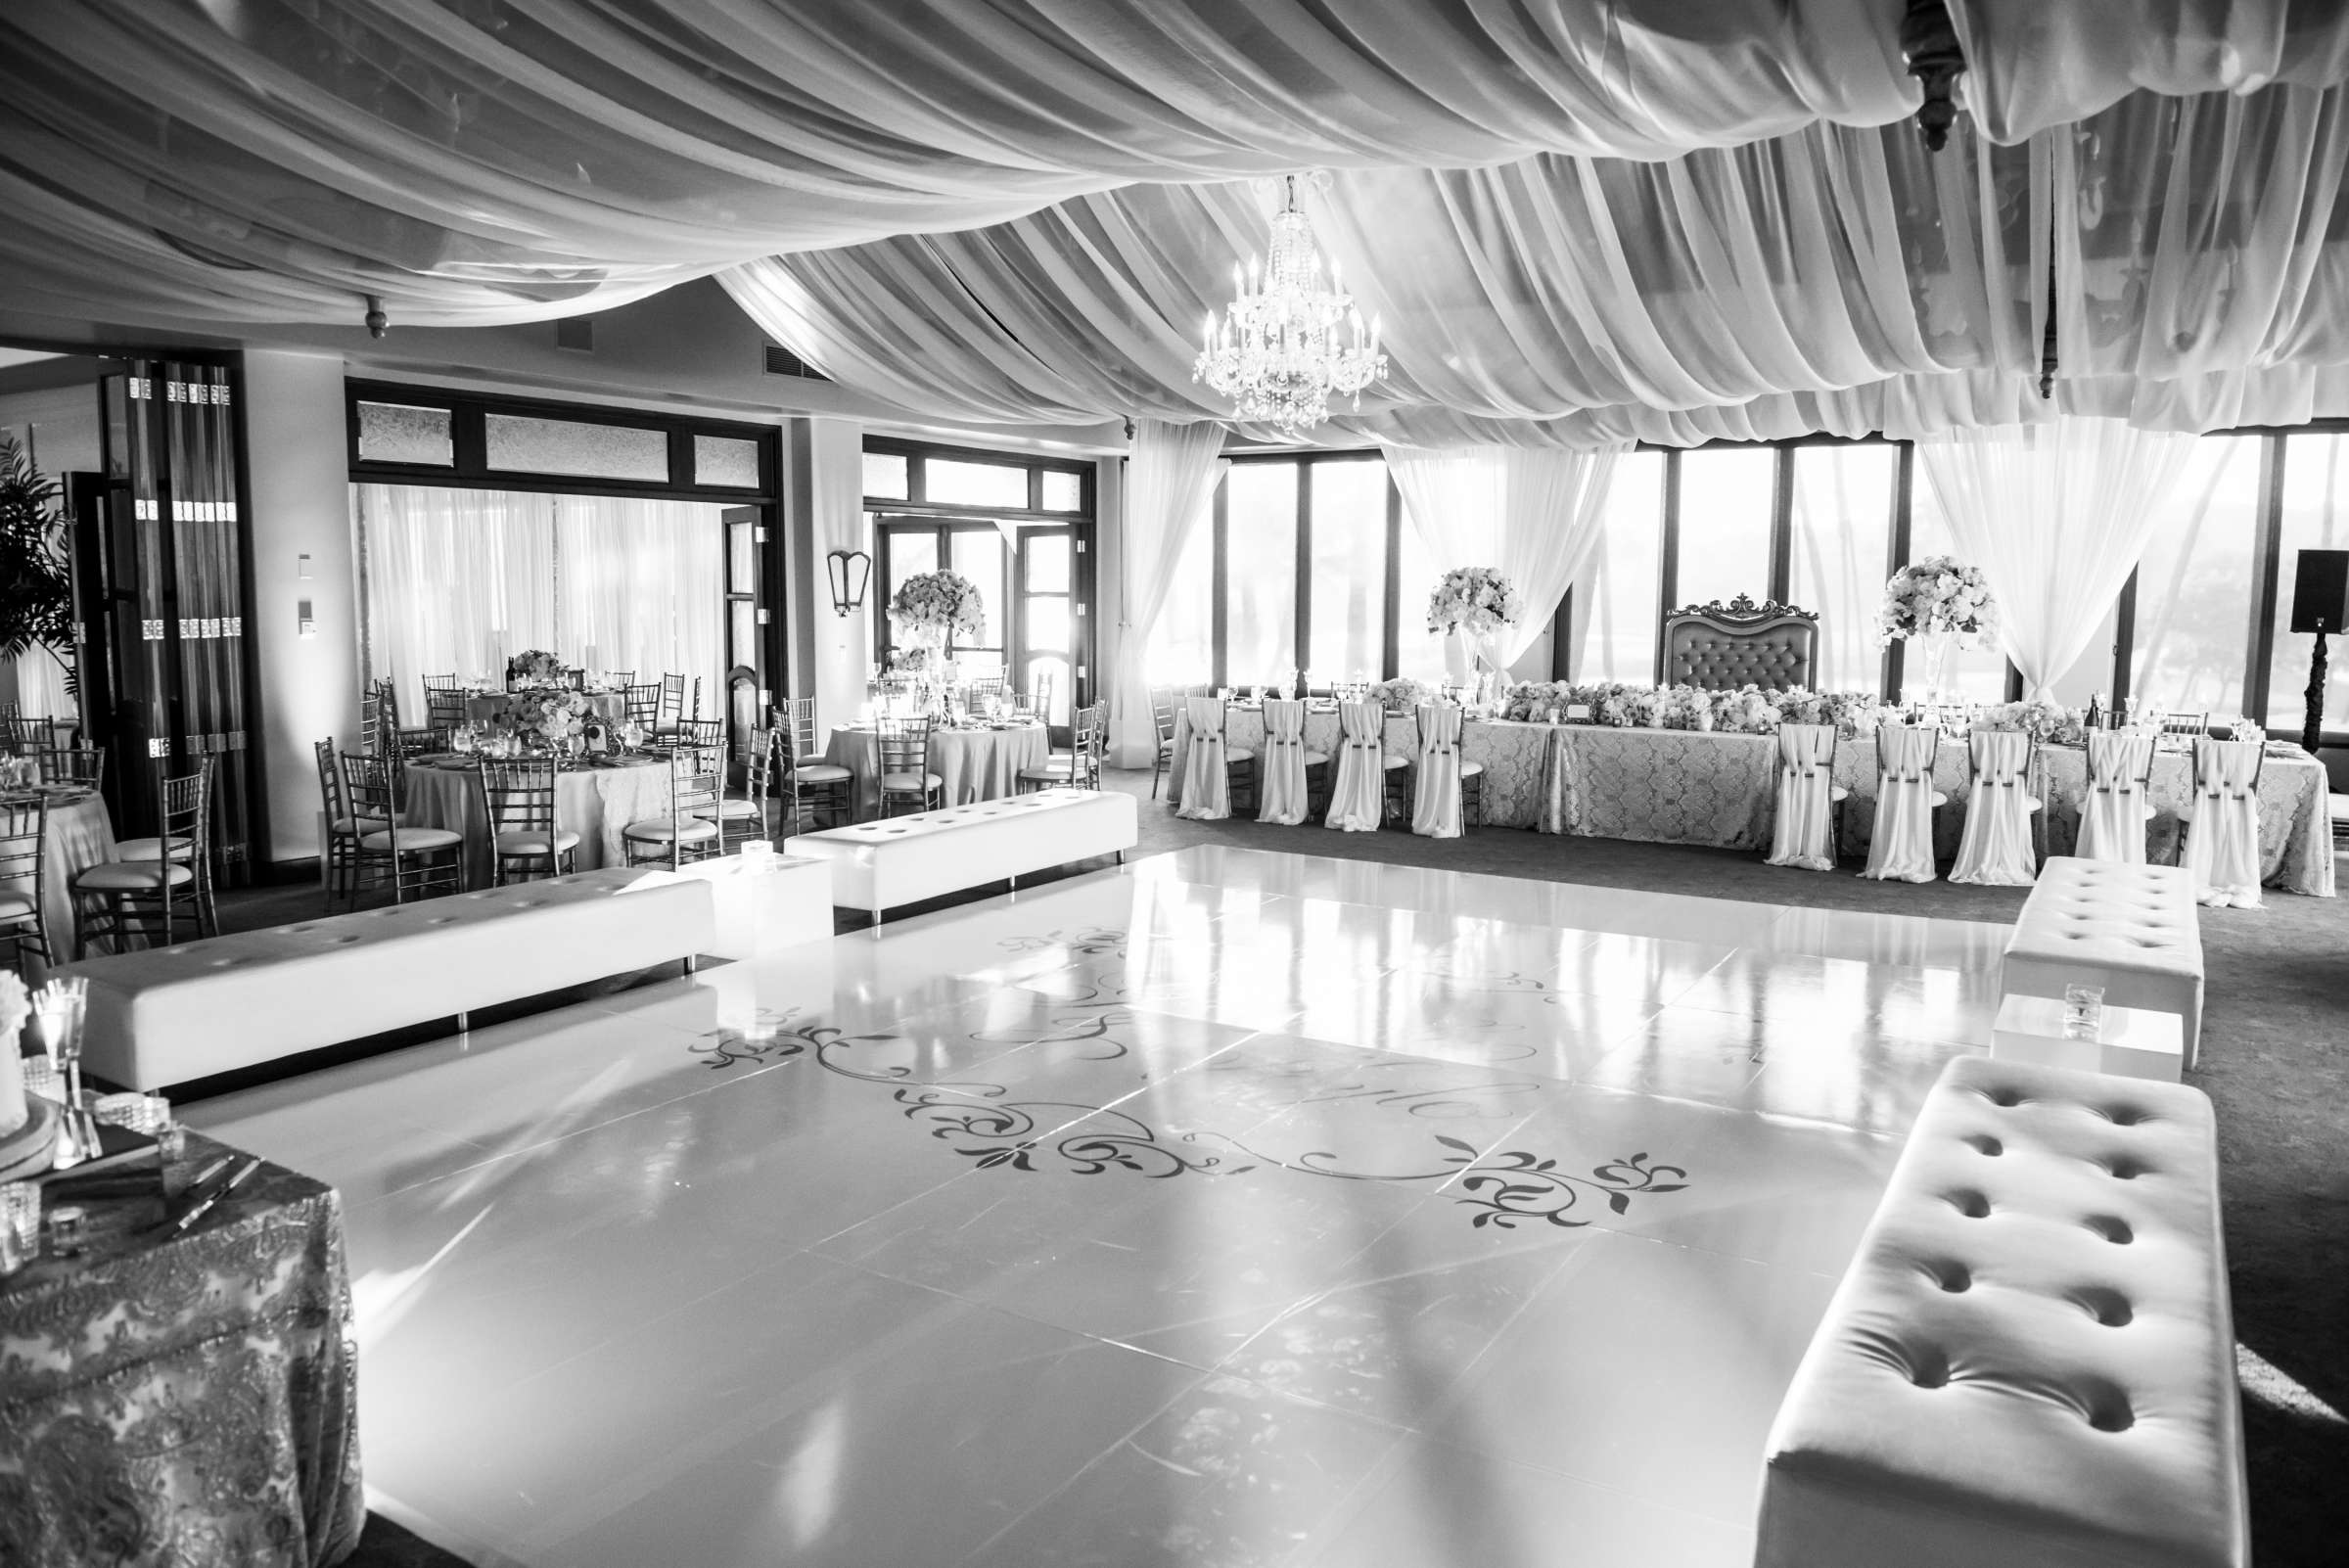 Fairbanks Ranch Country Club Wedding coordinated by Monarch Weddings, Gabriella and Kyle Wedding Photo #123 by True Photography